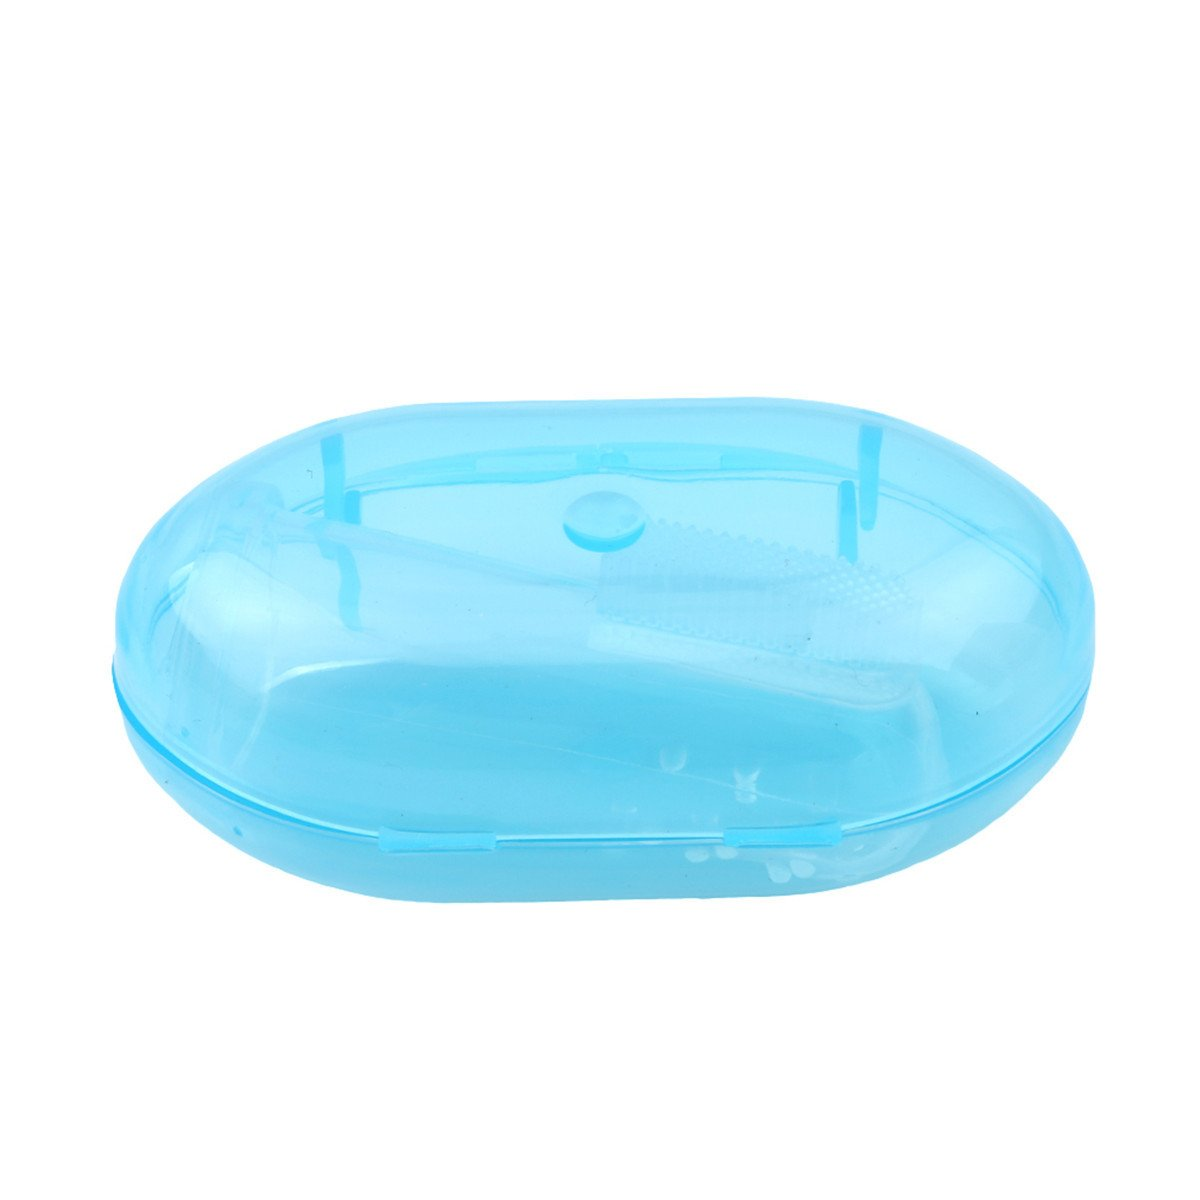 Edtoy Soft Silicone Baby Finger Toothbrush Teeth Rubber Massager (Blue)